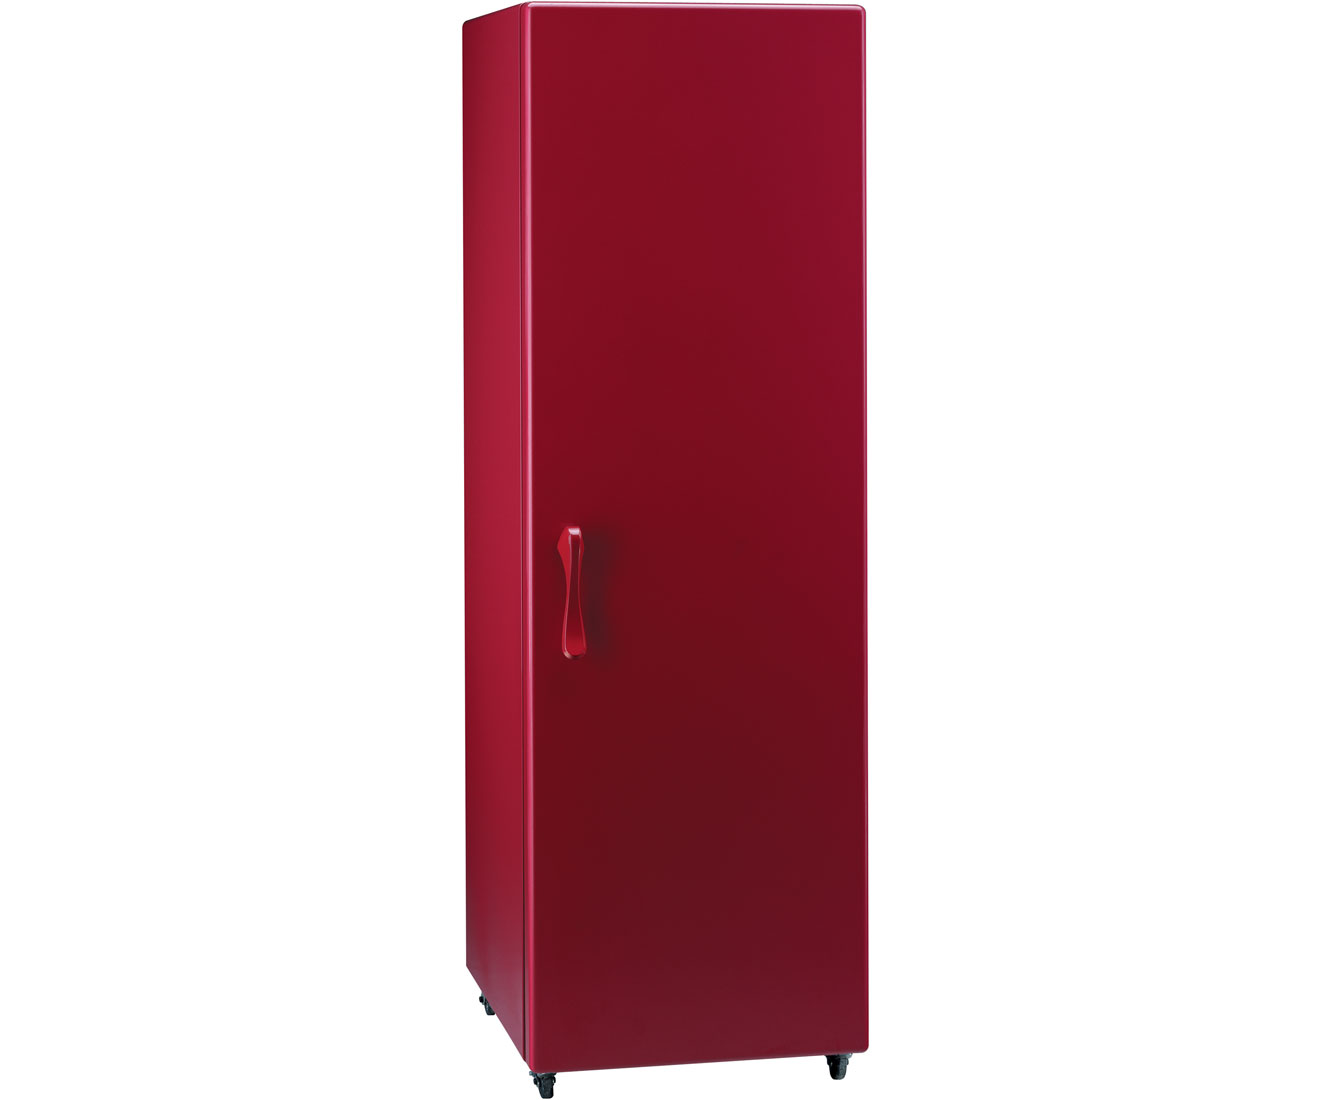 Smeg FPD34RD1 Free Standing Fridge Freezer in Red